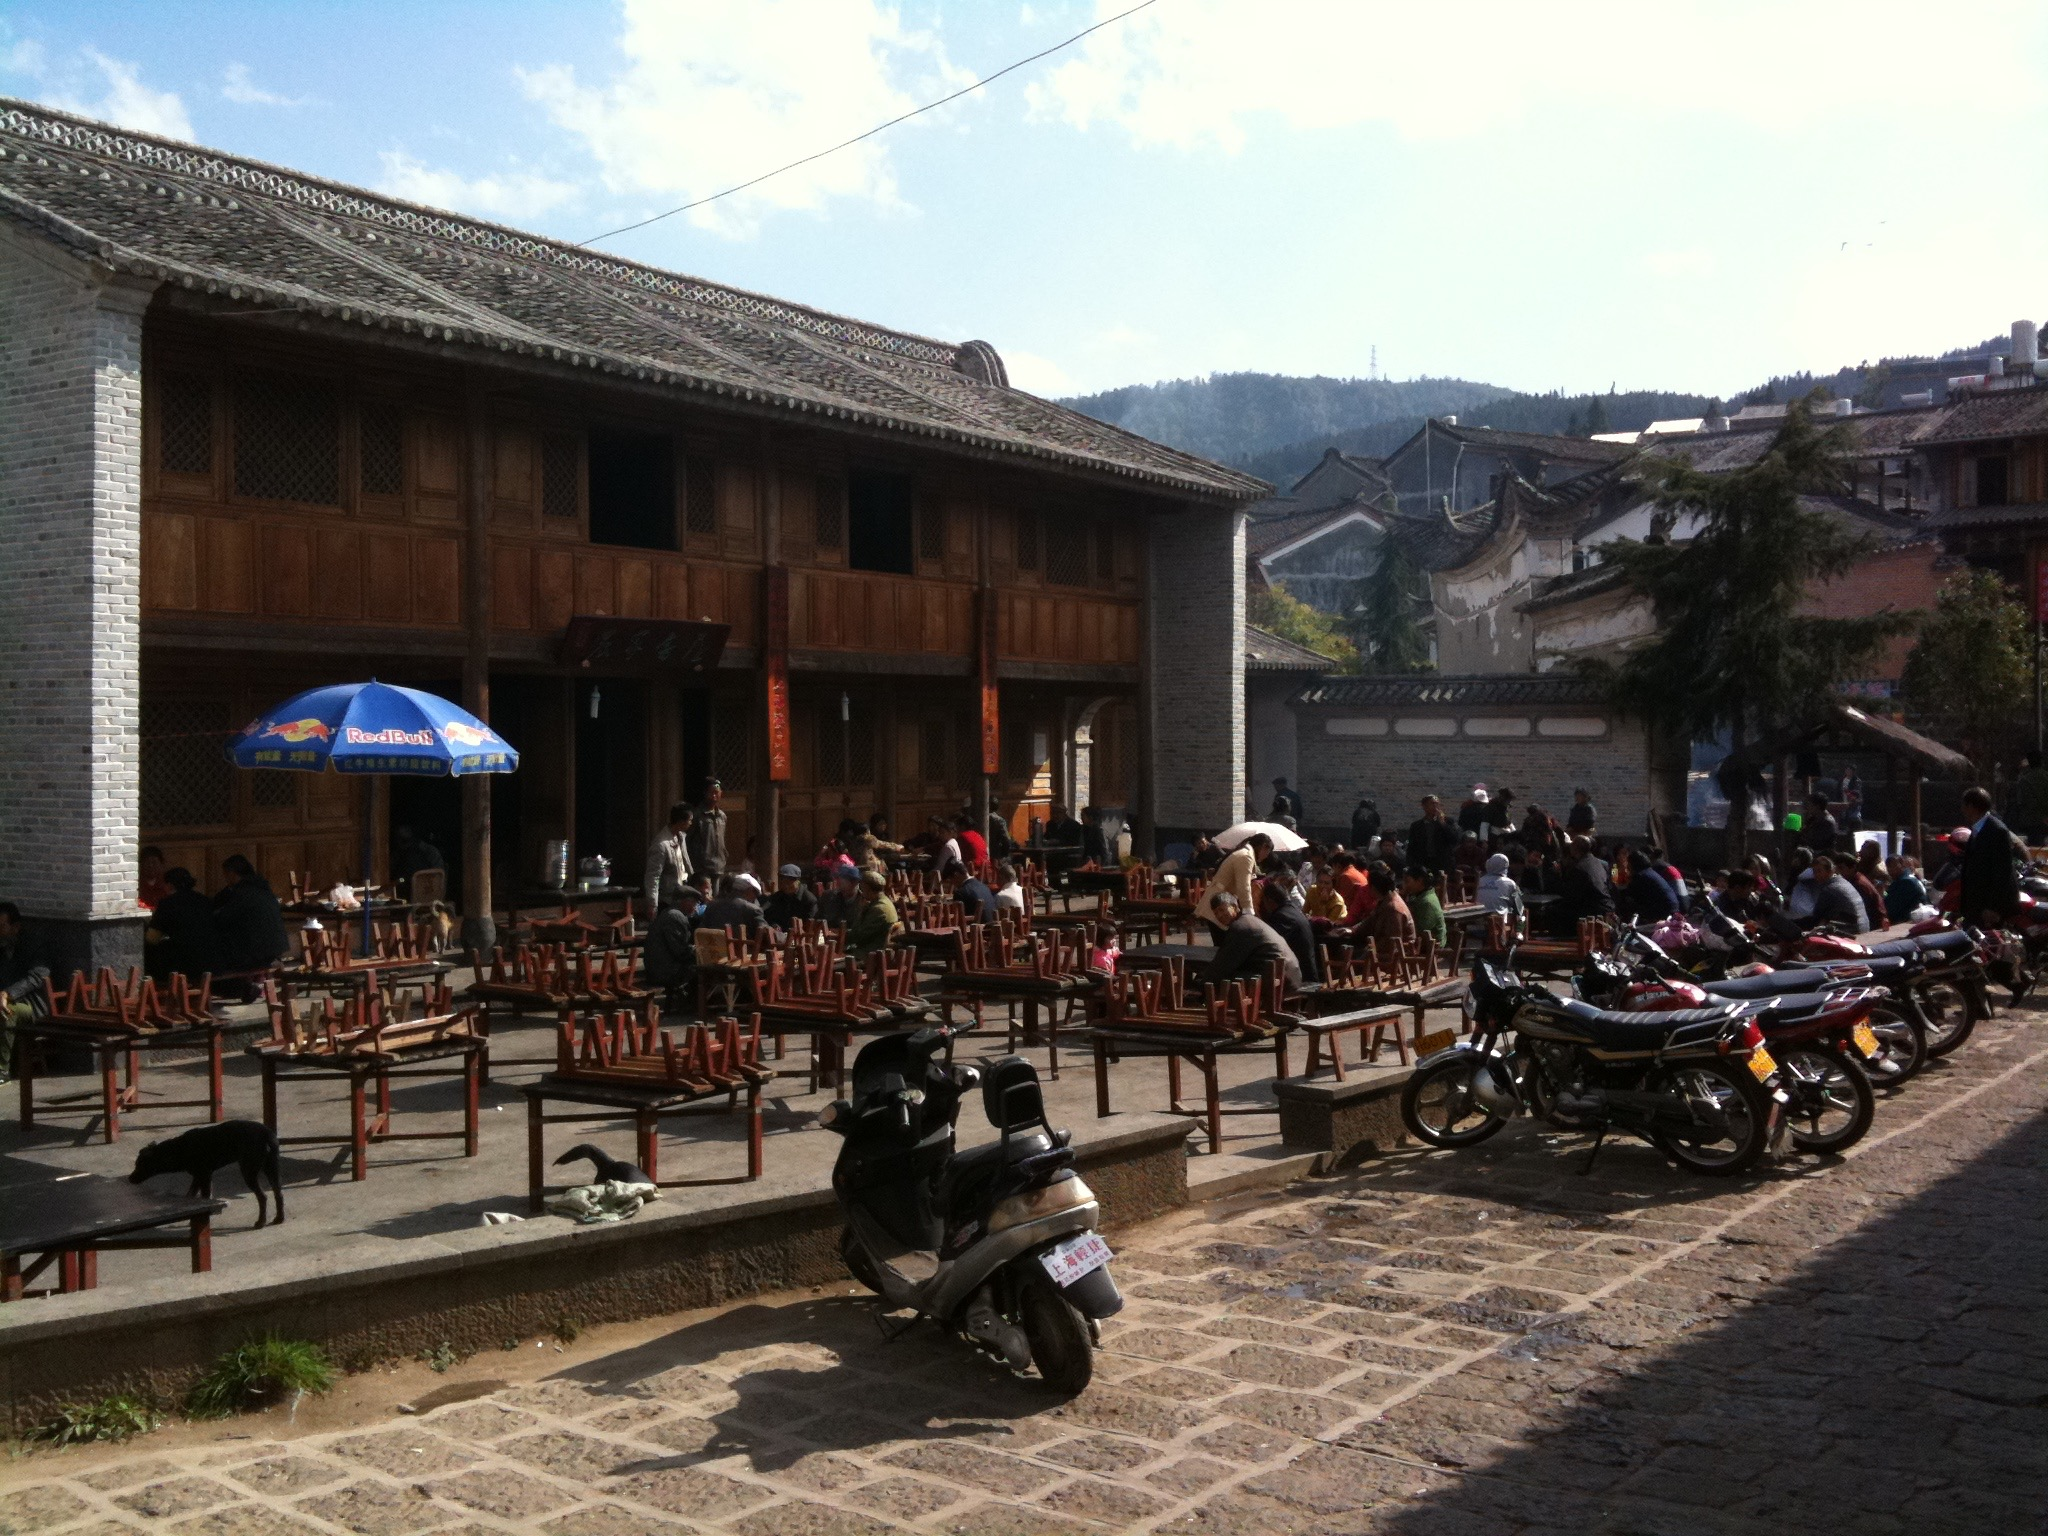 Teahouse in Heshun Village, Yunnan